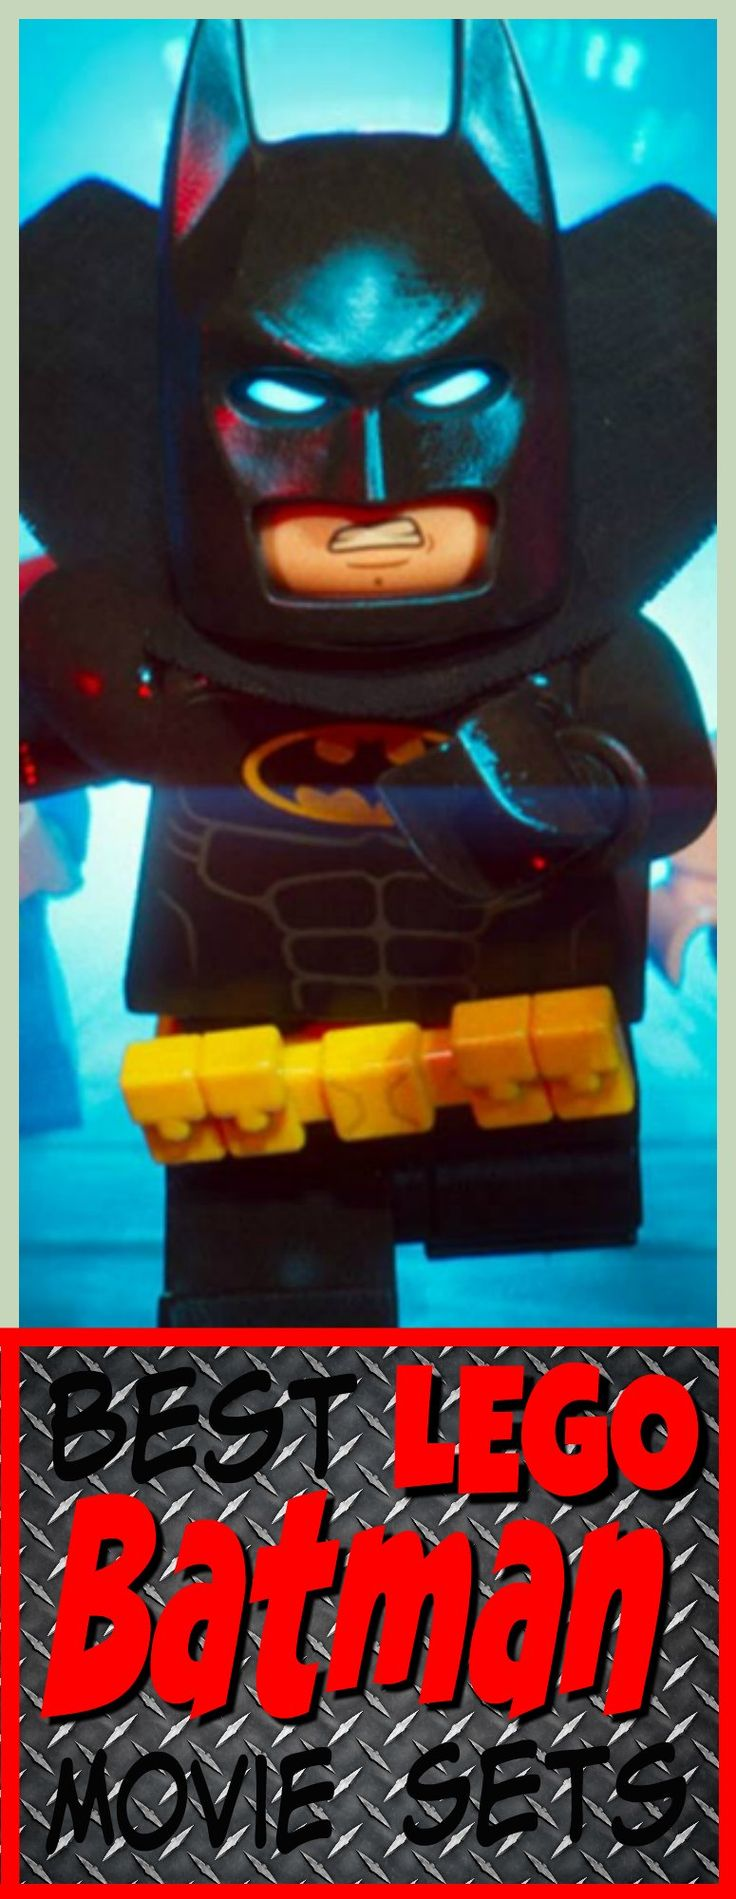 Best Lego Batman Movie Sets 2017 - Batman and his friends all have updates and there are new pieces with these sets. Kids and collectors are going to want these new LEGO Batman Movie Sets.